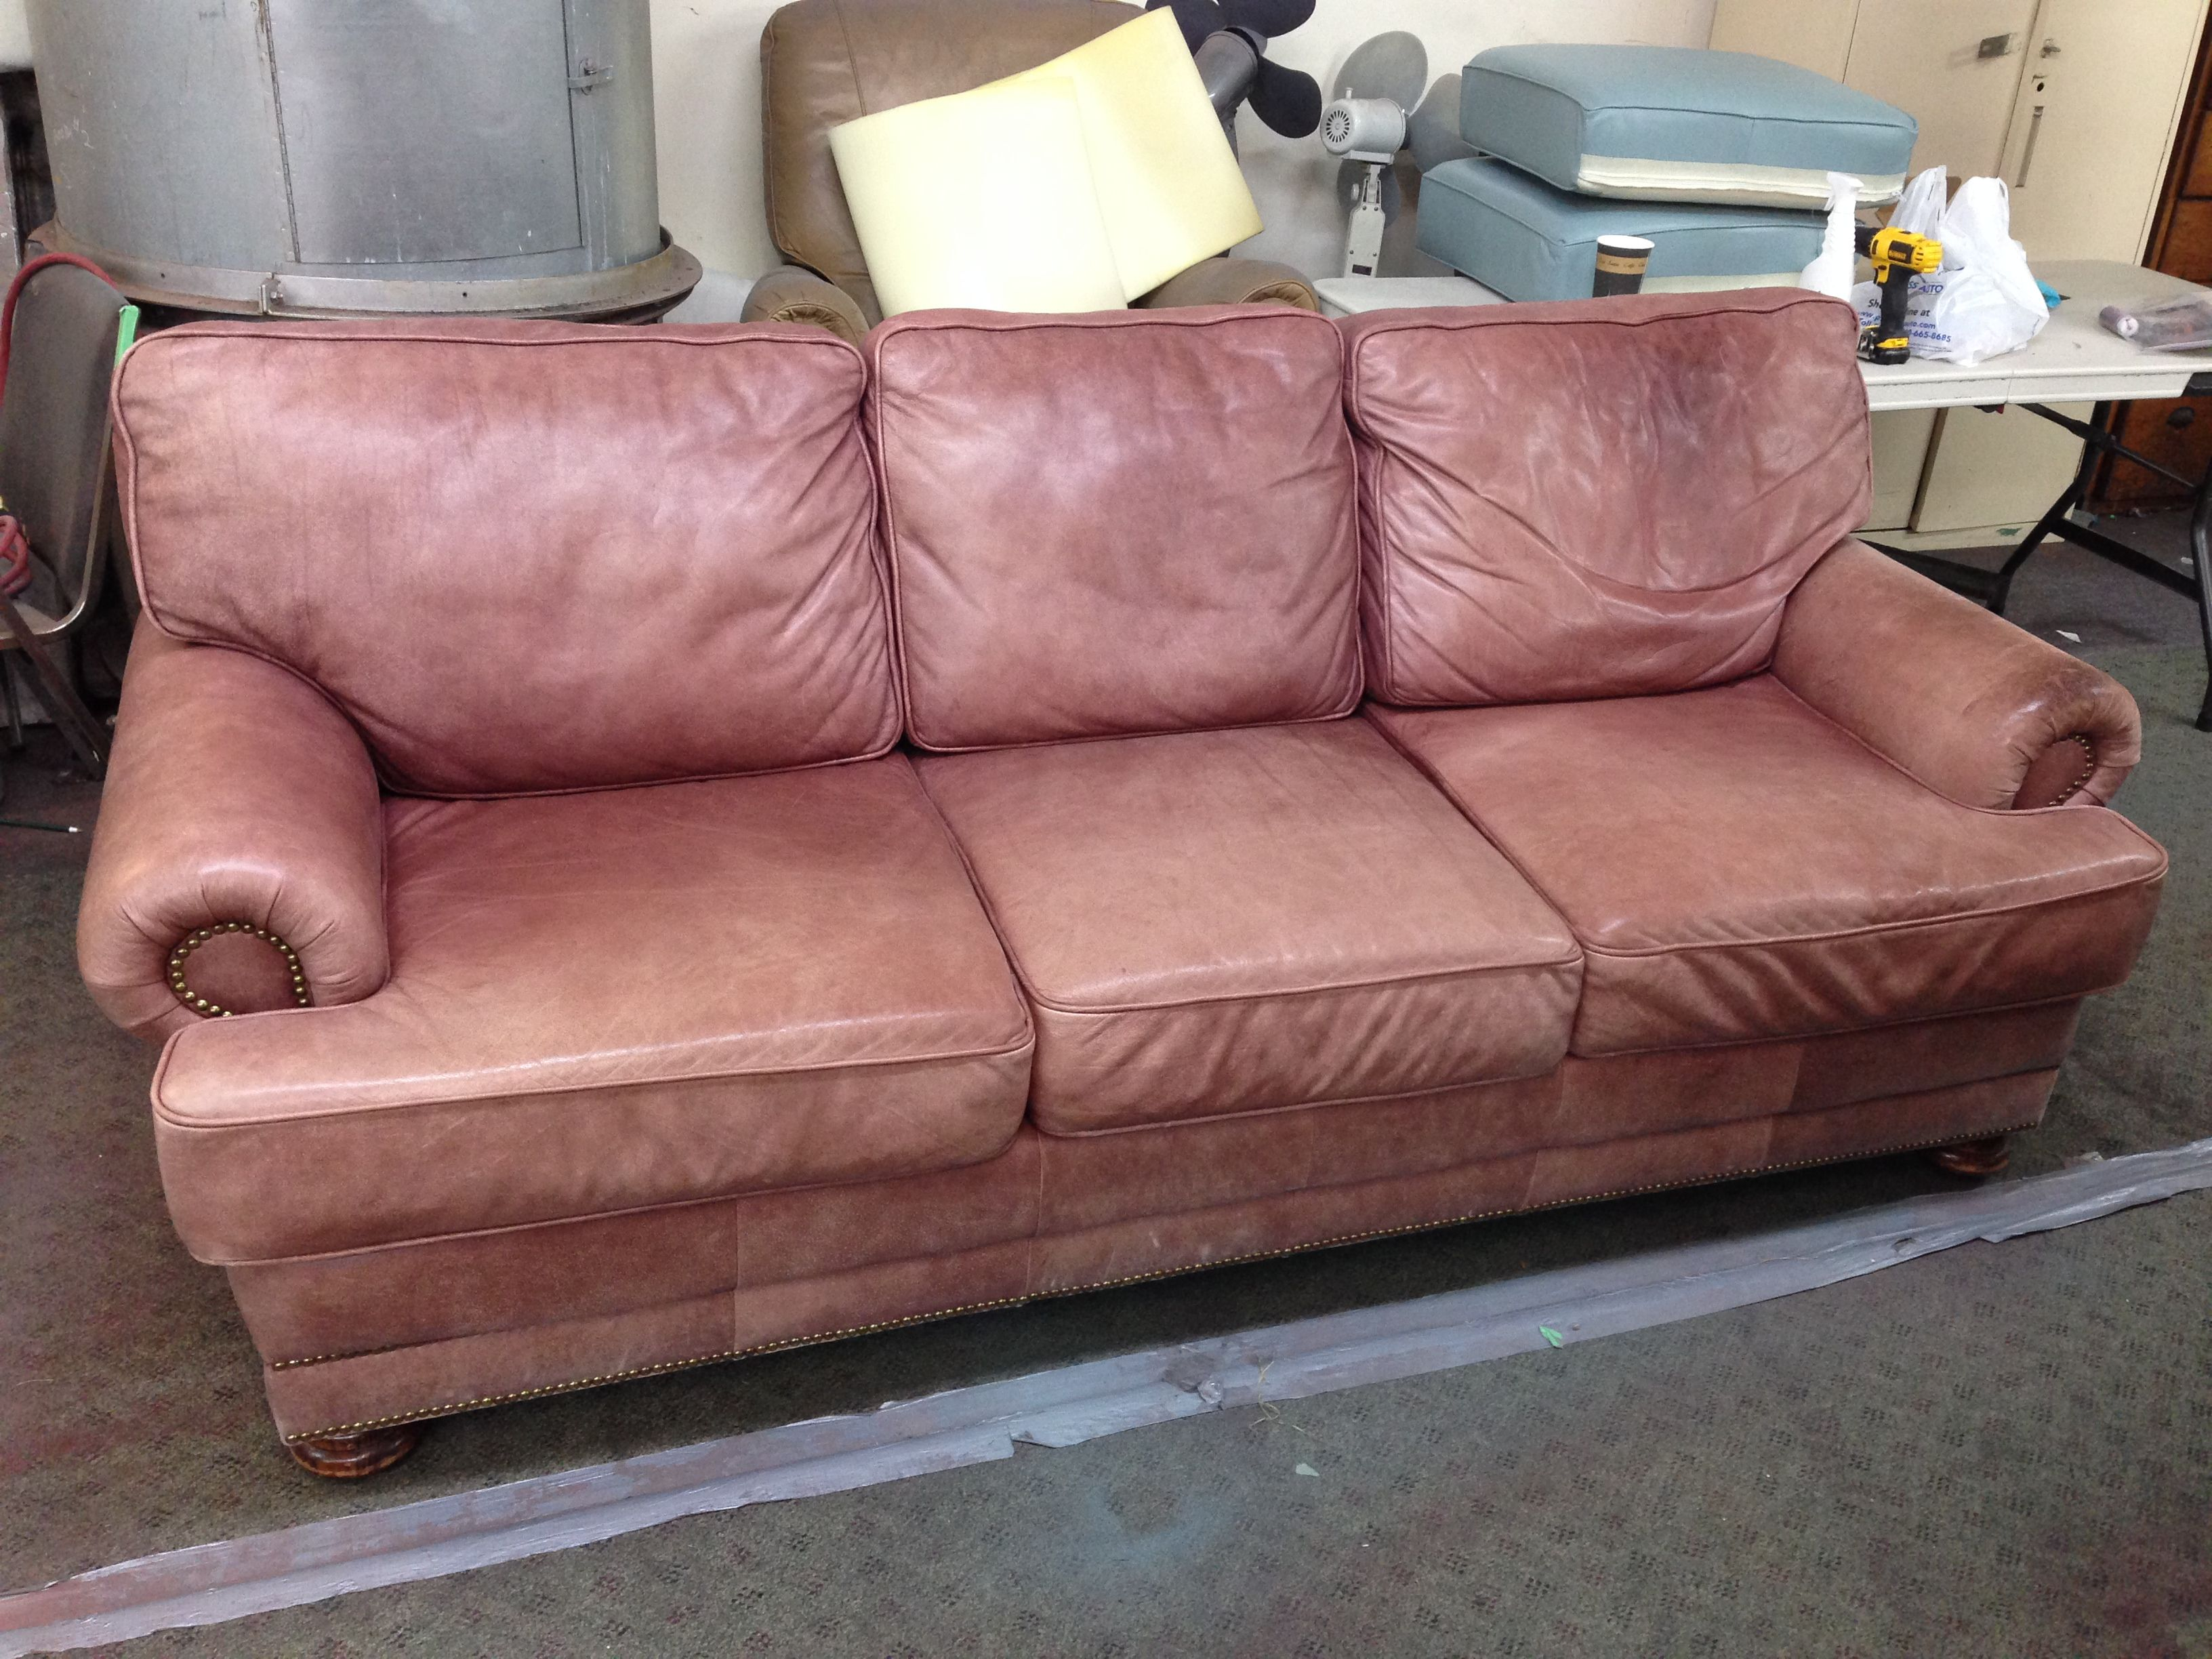 Faded leather Couch before picture